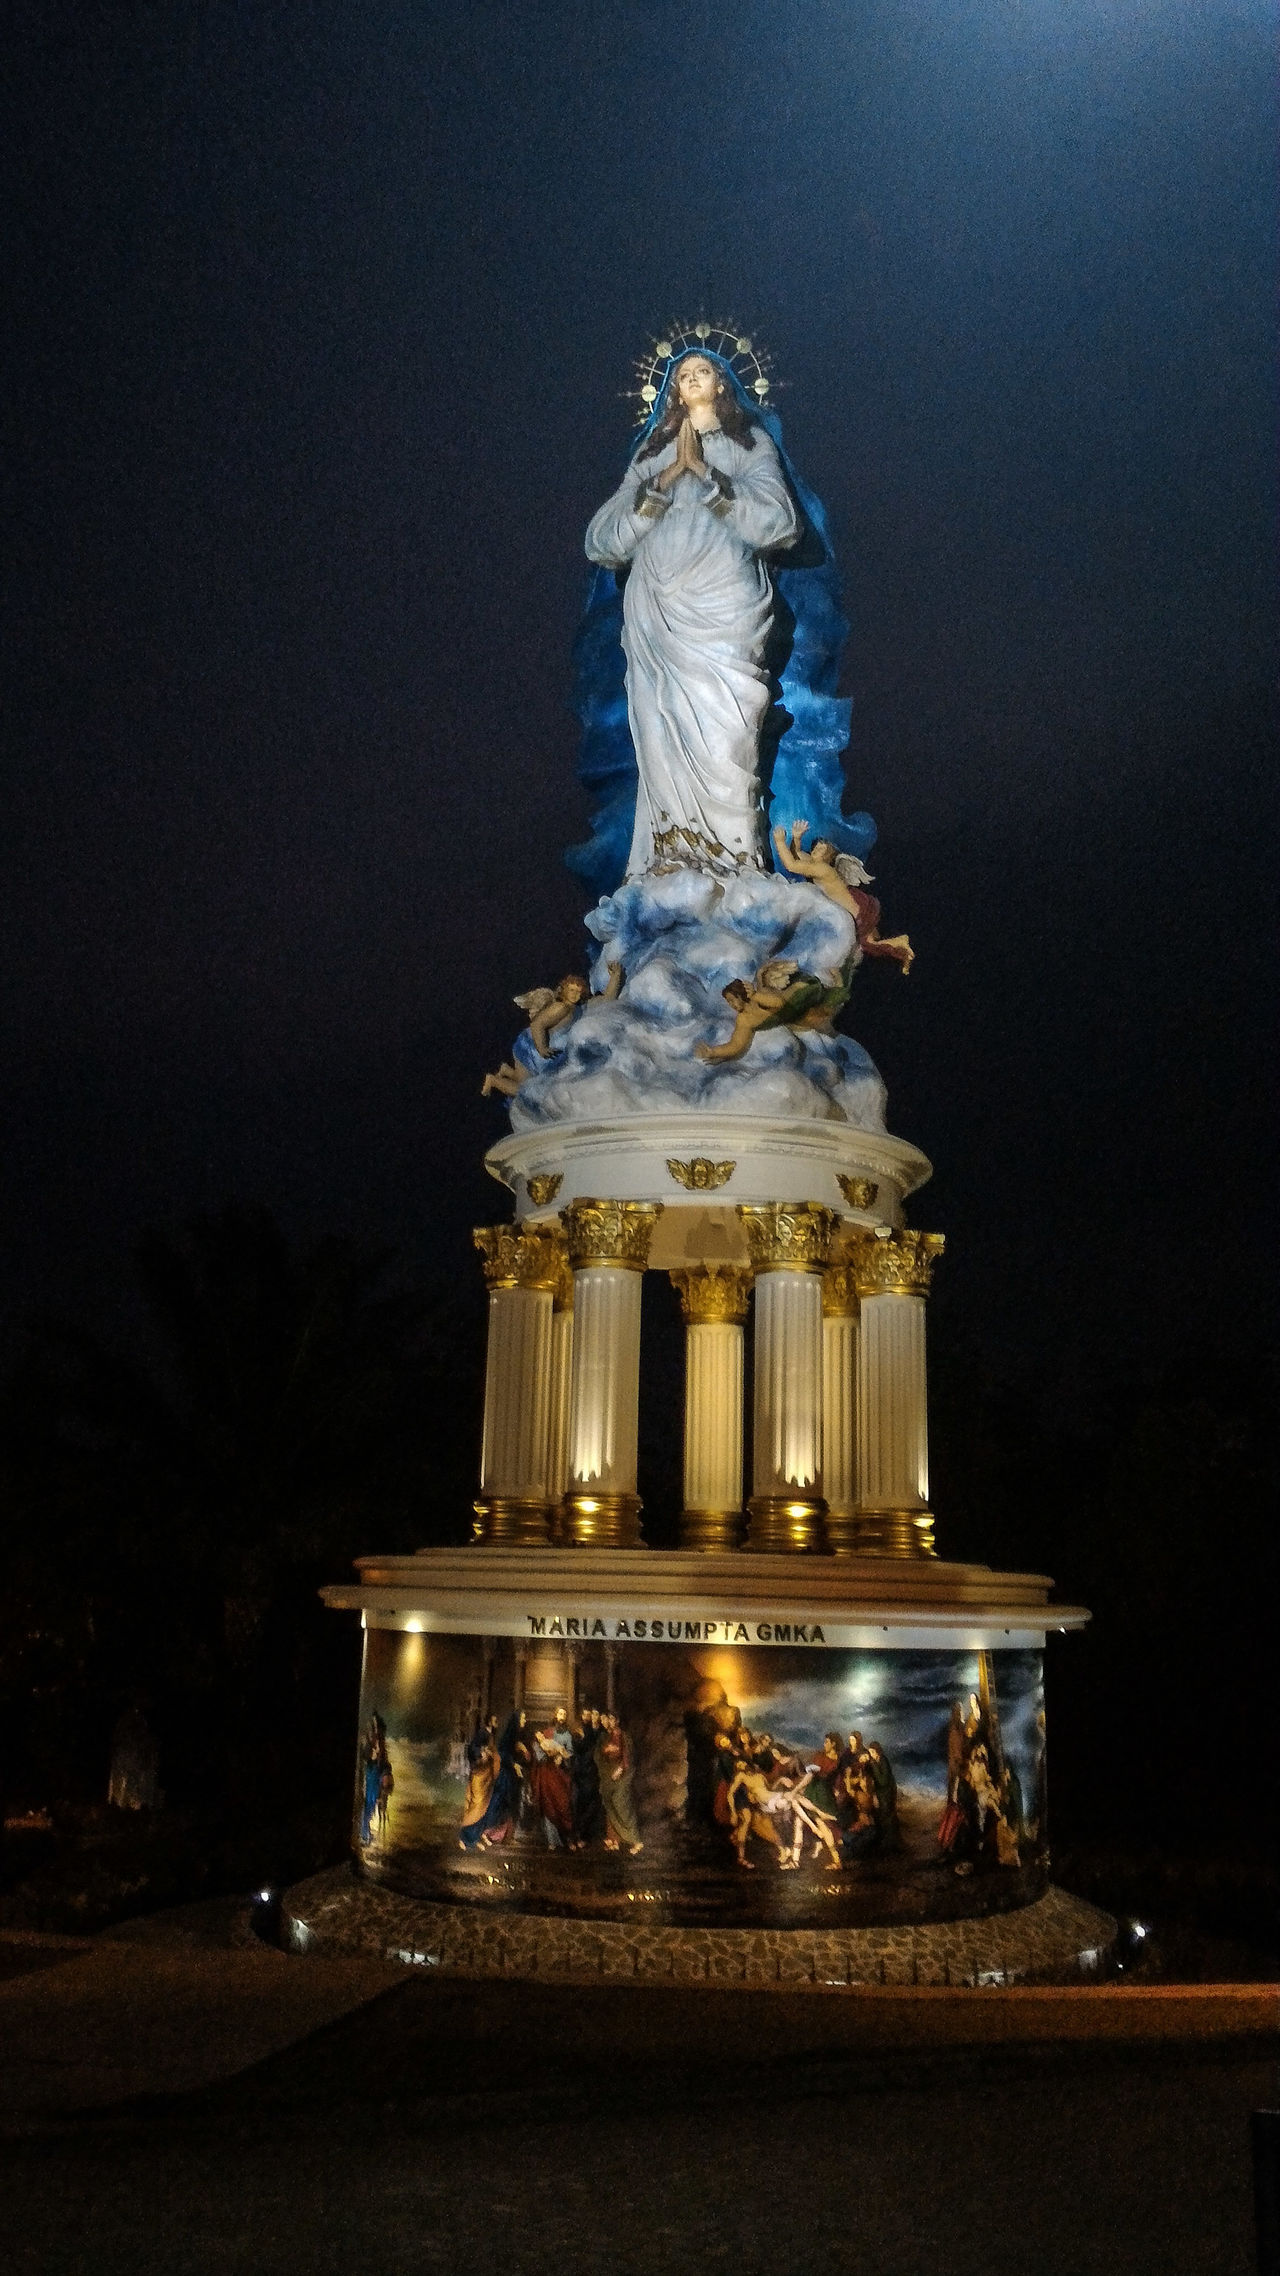 Goa Maria Kereb Ambarawa - Mother Mary Full of Grace Statue SaintMary Mothermary Mothermaria Bunda Maria Fullofgrace Virgin Mary Virginmary Ibusuci